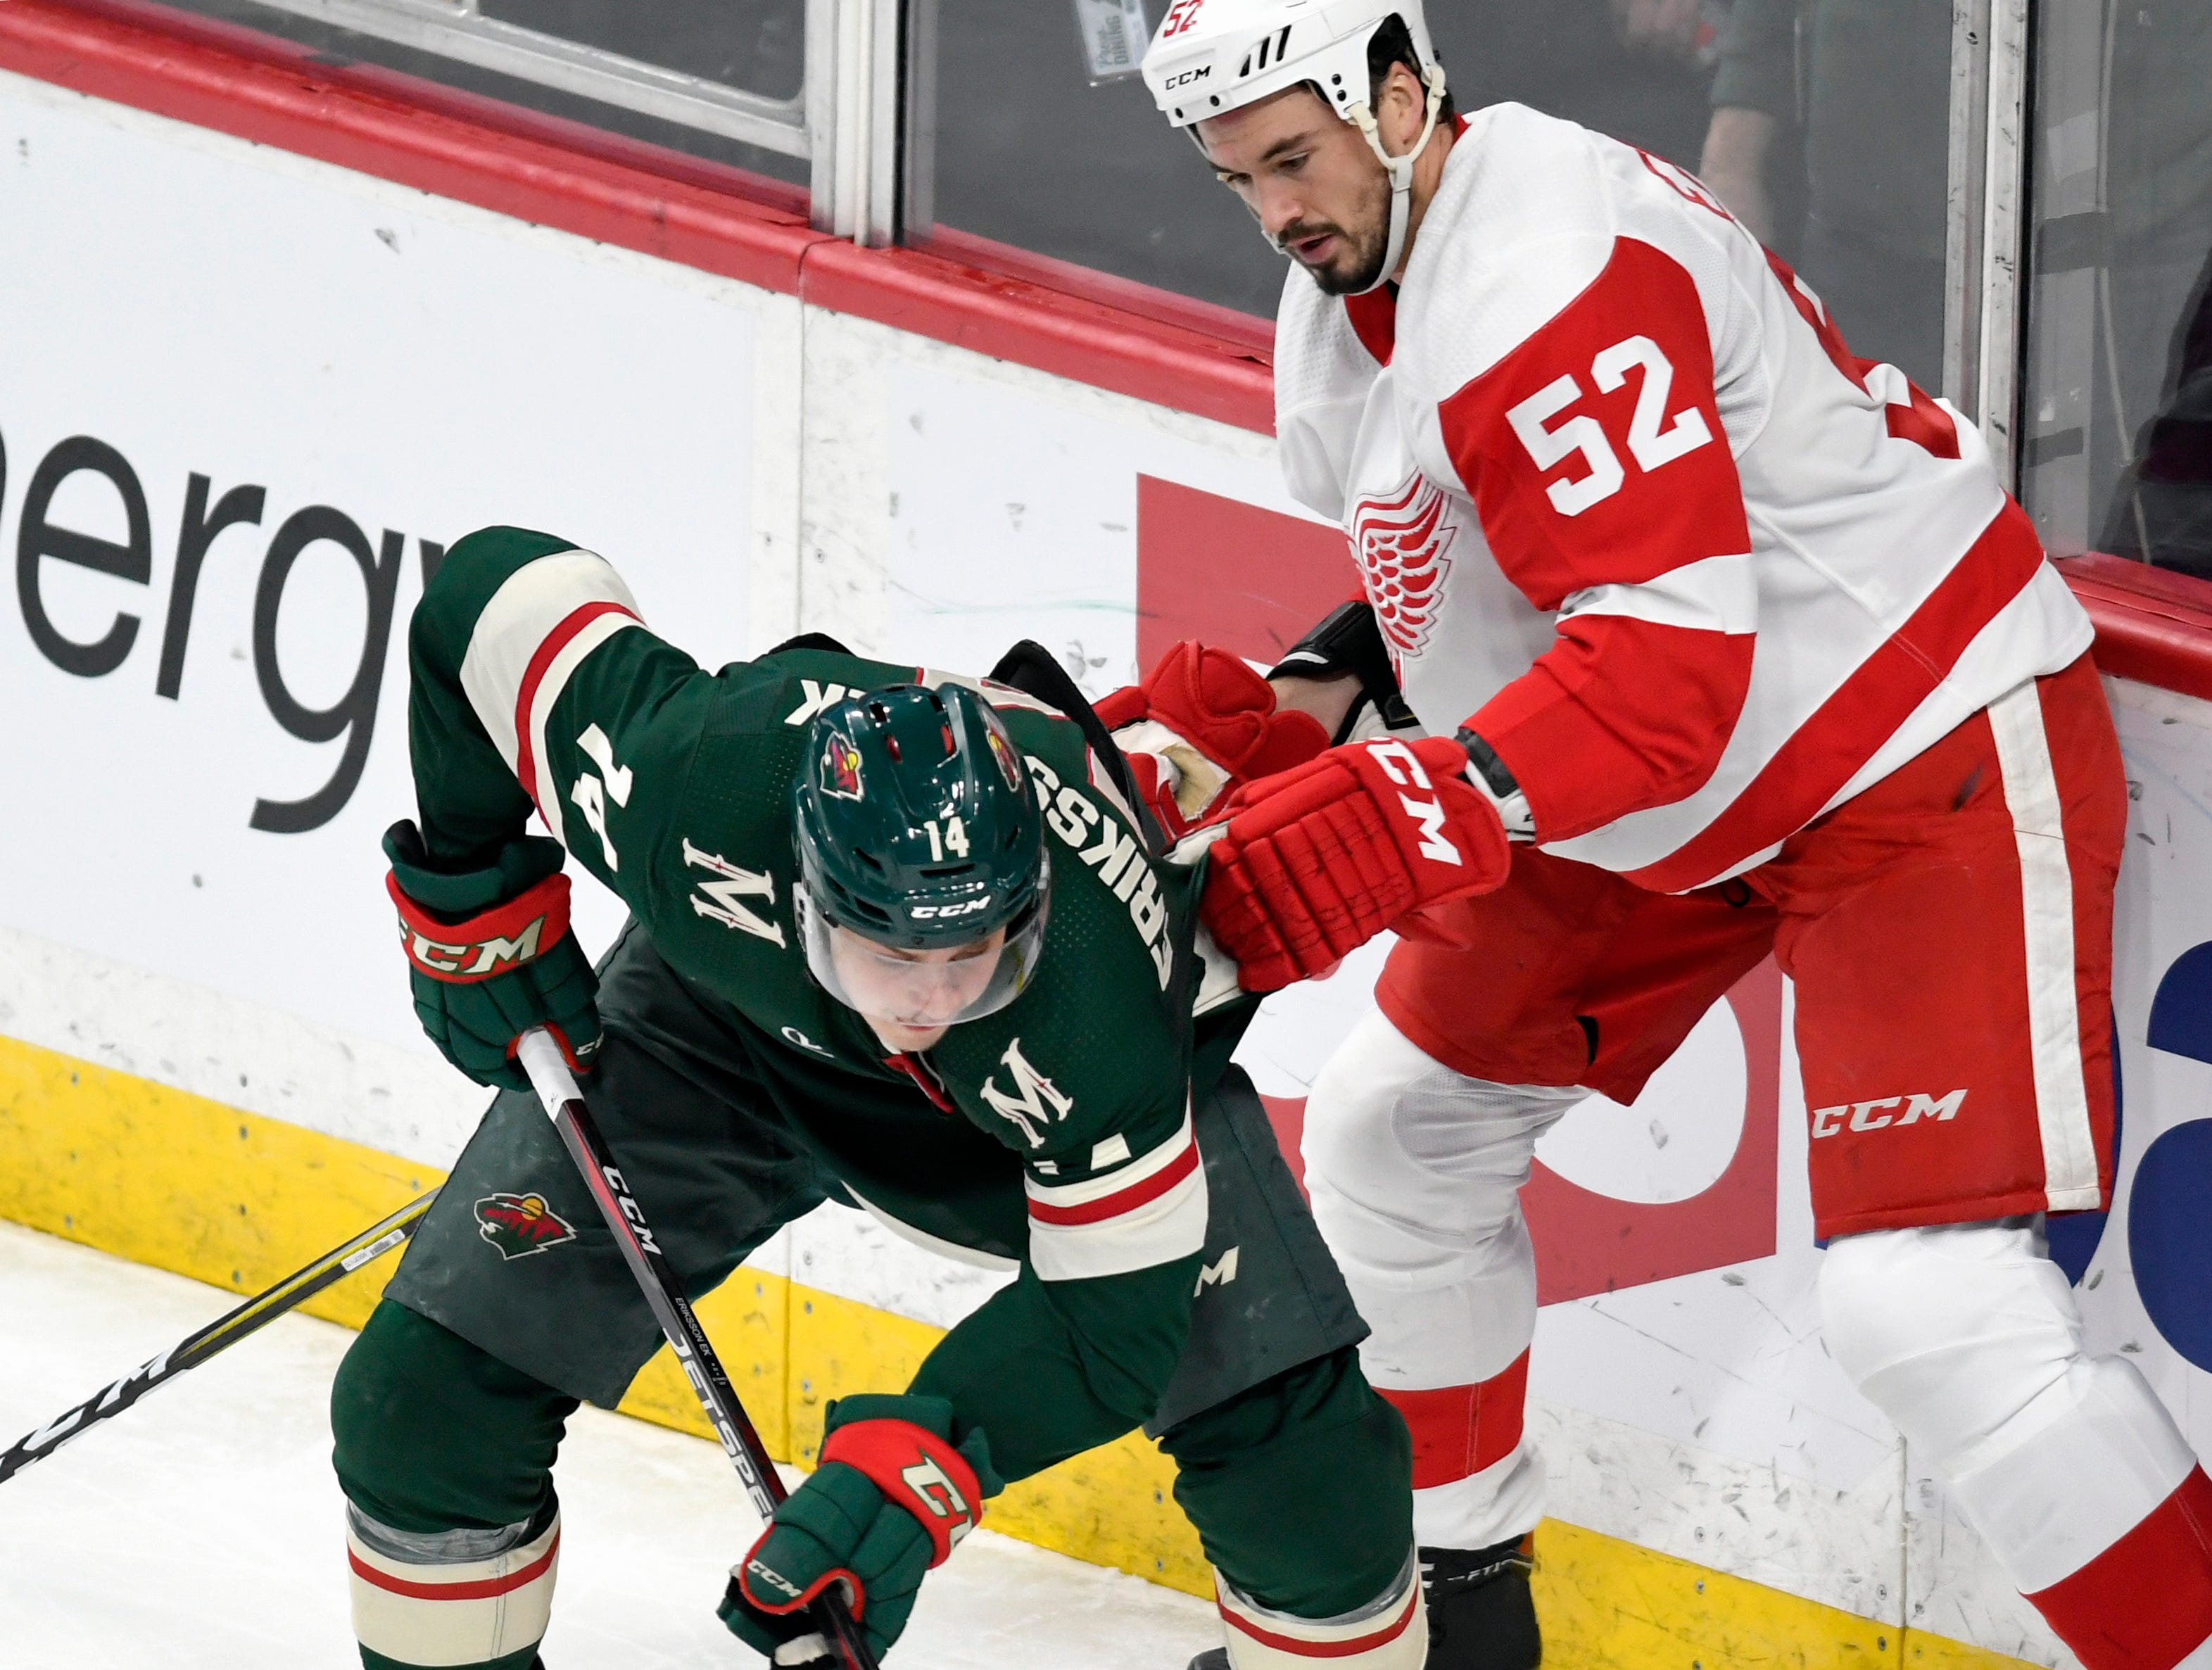 Minnesota Wild's Joel Eriksson Ek, left, of Sweden, takes the puck away from Detroit Red Wings' Jonathan Ericsson (52), of Sweden, during the second period of an NHL hockey game Saturday, Jan. 12, 2019, in St. Paul, Minn. (AP Photo/Tom Olmscheid)